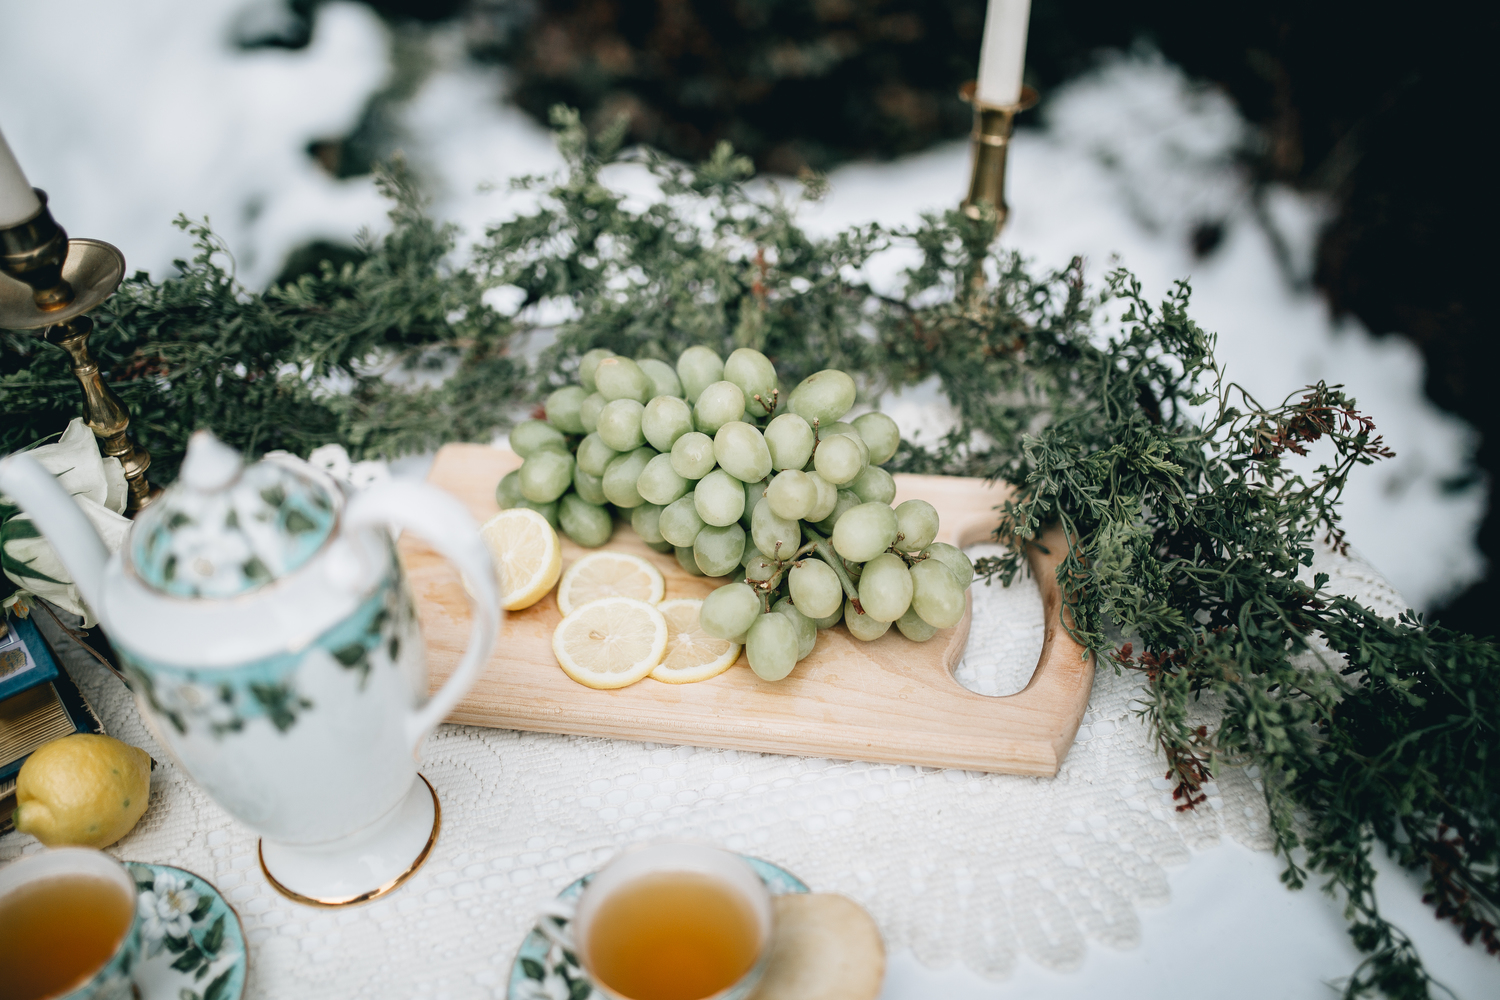 DETAILS  Styling by: Lucy Bergstrom  Photography by: Alice Cannon  Rentals provided by: Refined Vintage Events